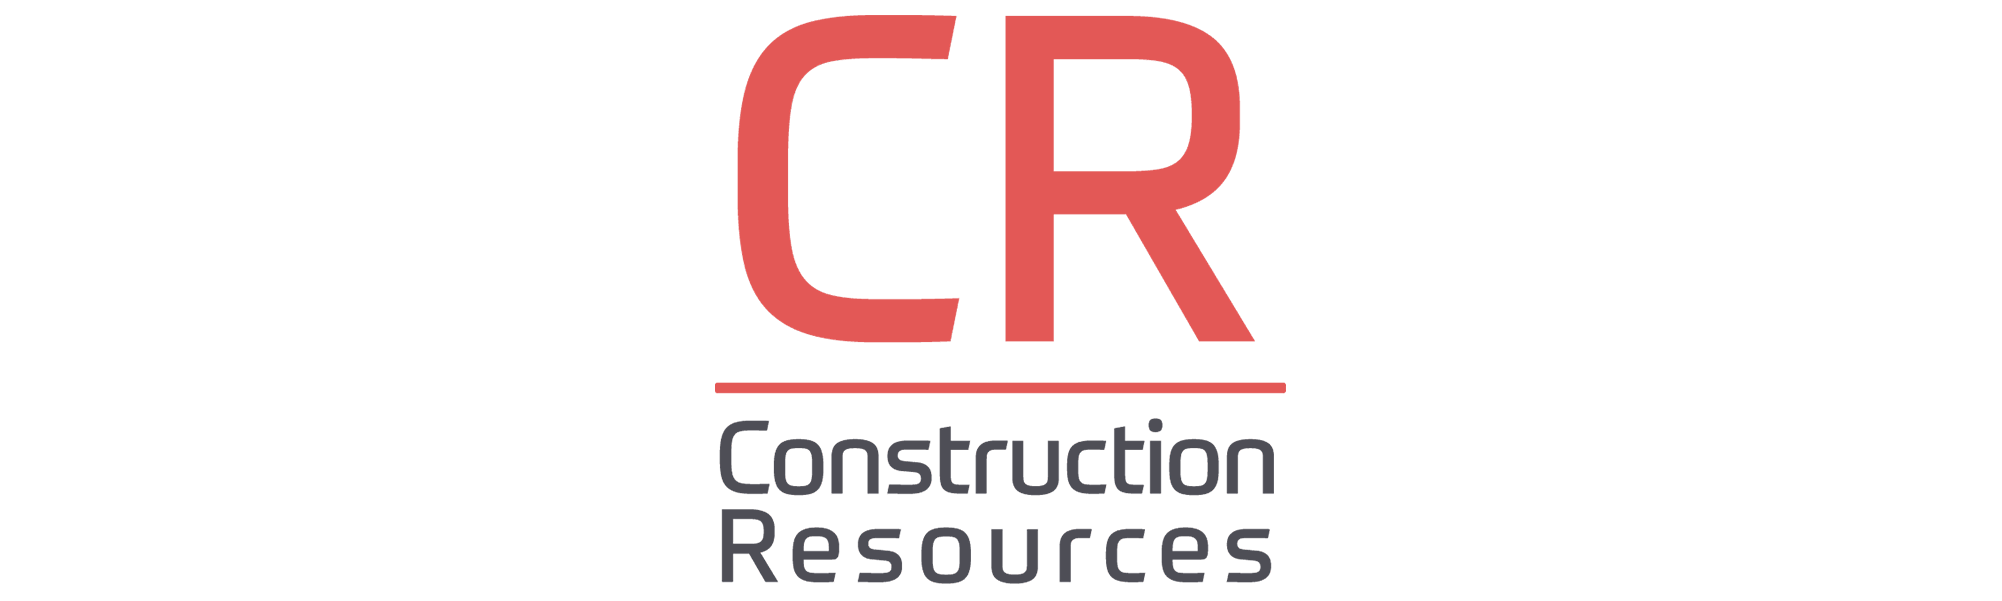 Construction Resources